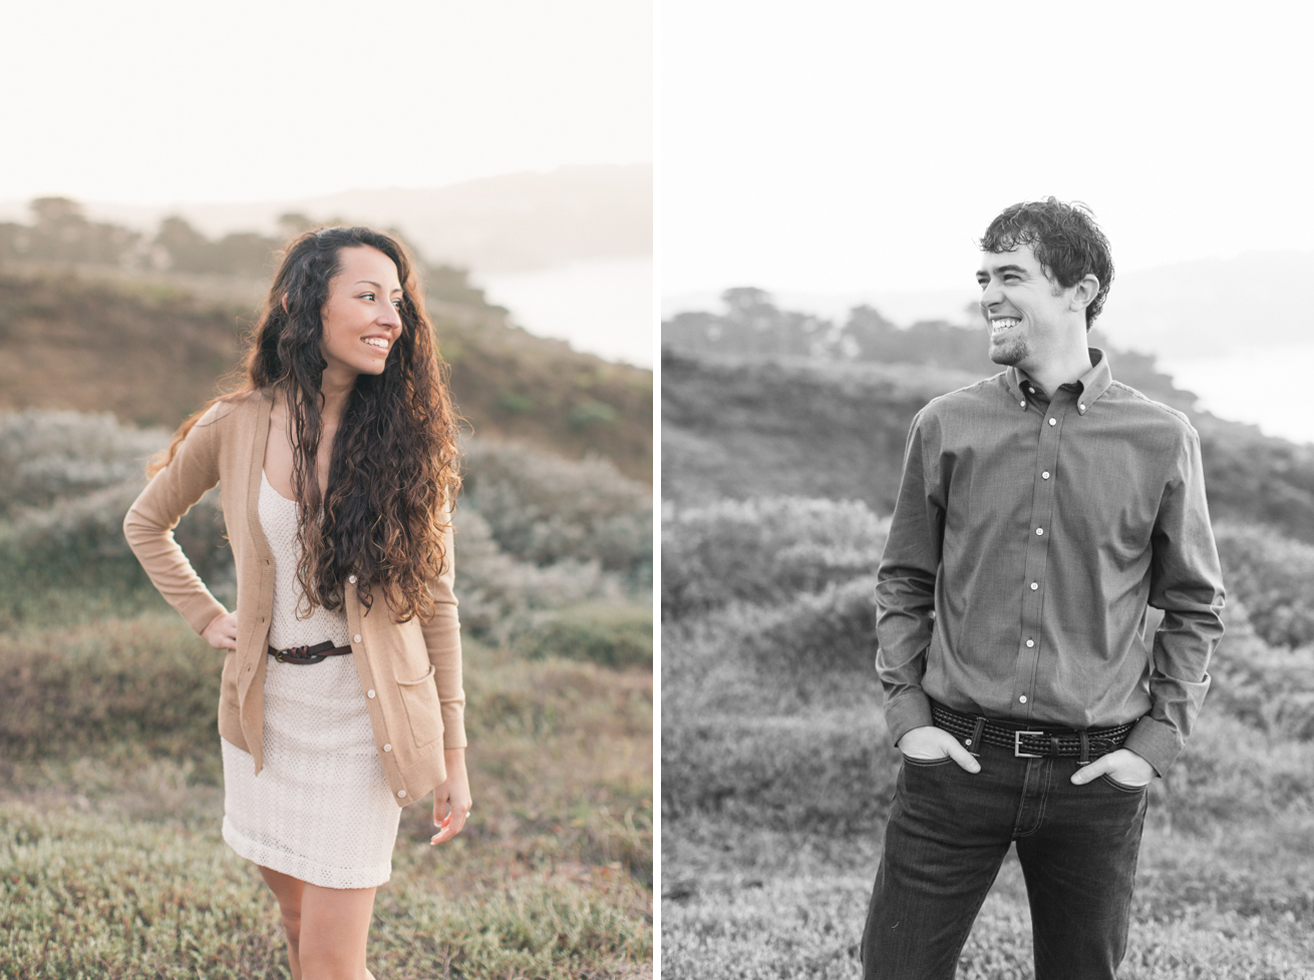 roxie_sf_engagement_whimsical22